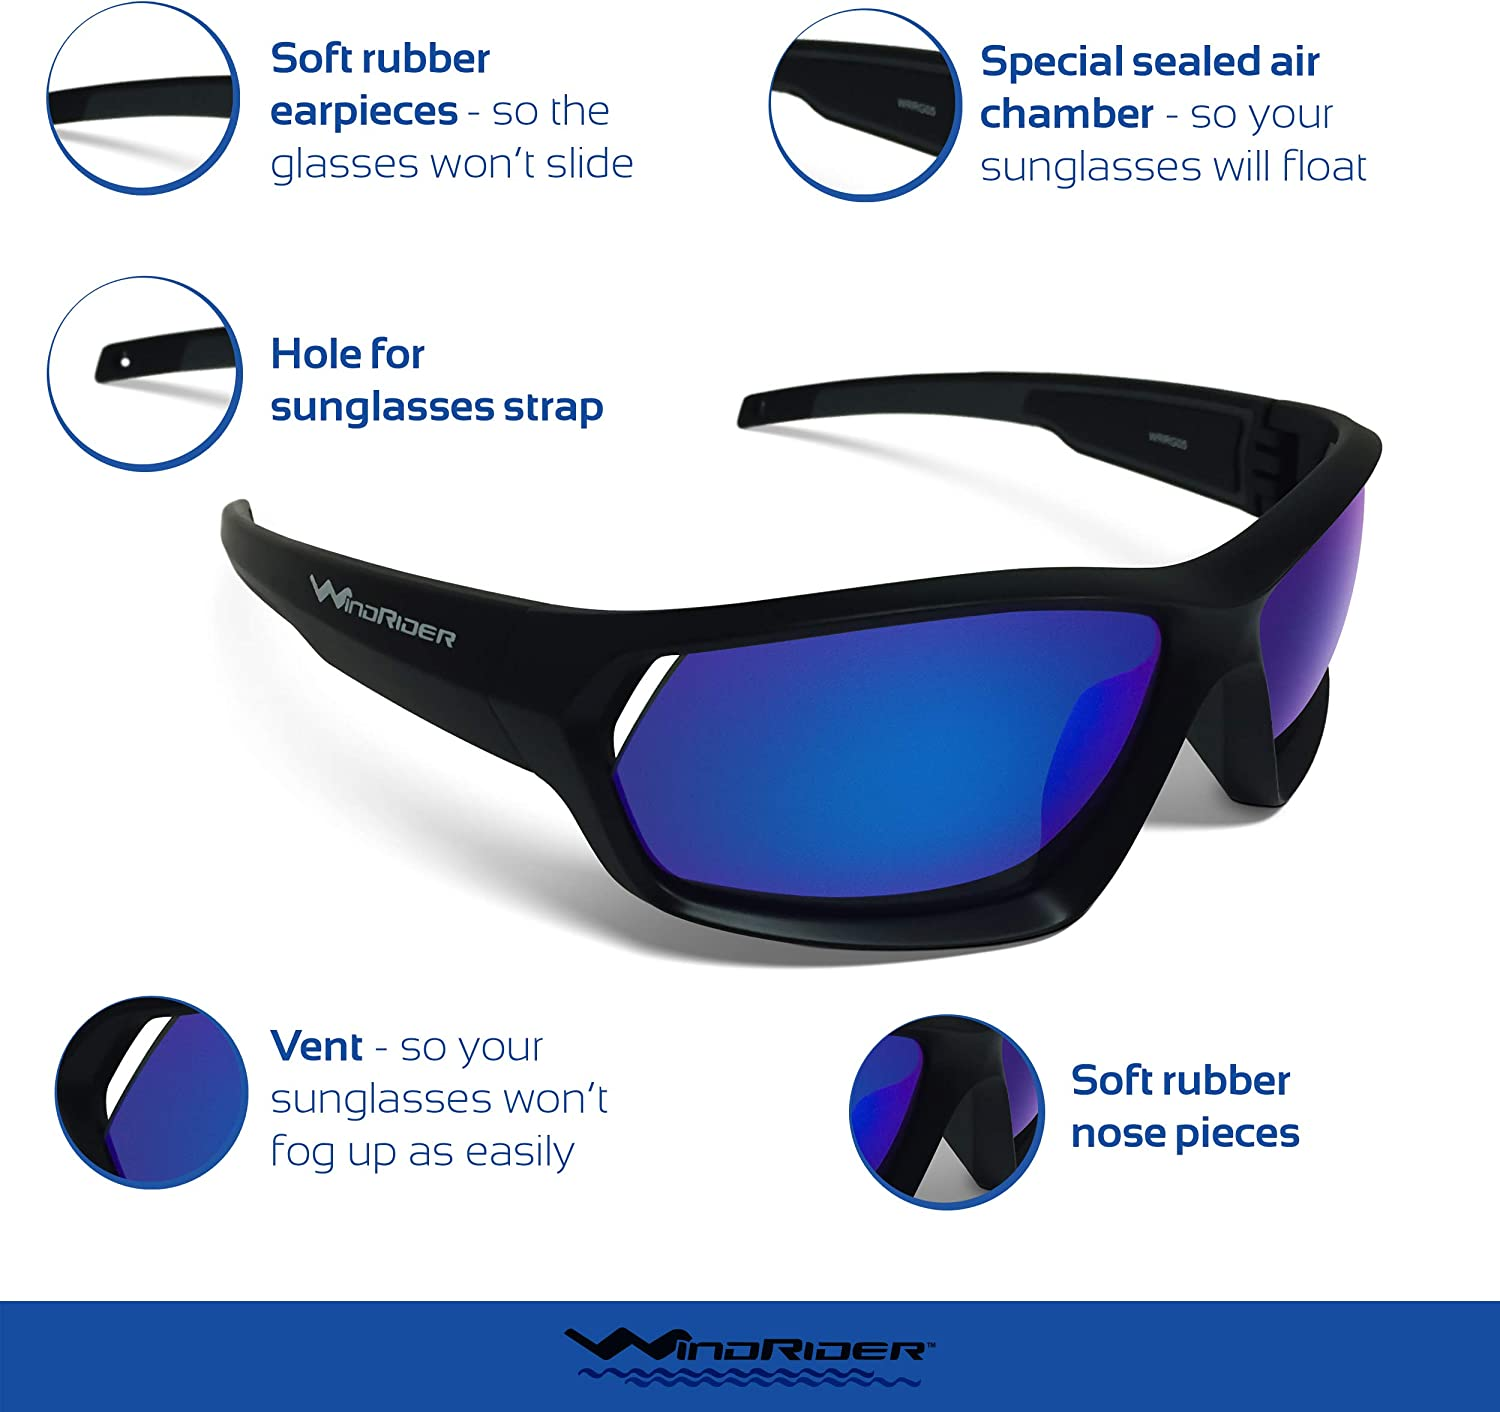 WindRider Polarized Floating Sunglasses for Men Designed for Fishing, Sailing, All Water Sports. Lightweight, Comfortable, 100% UV Protection